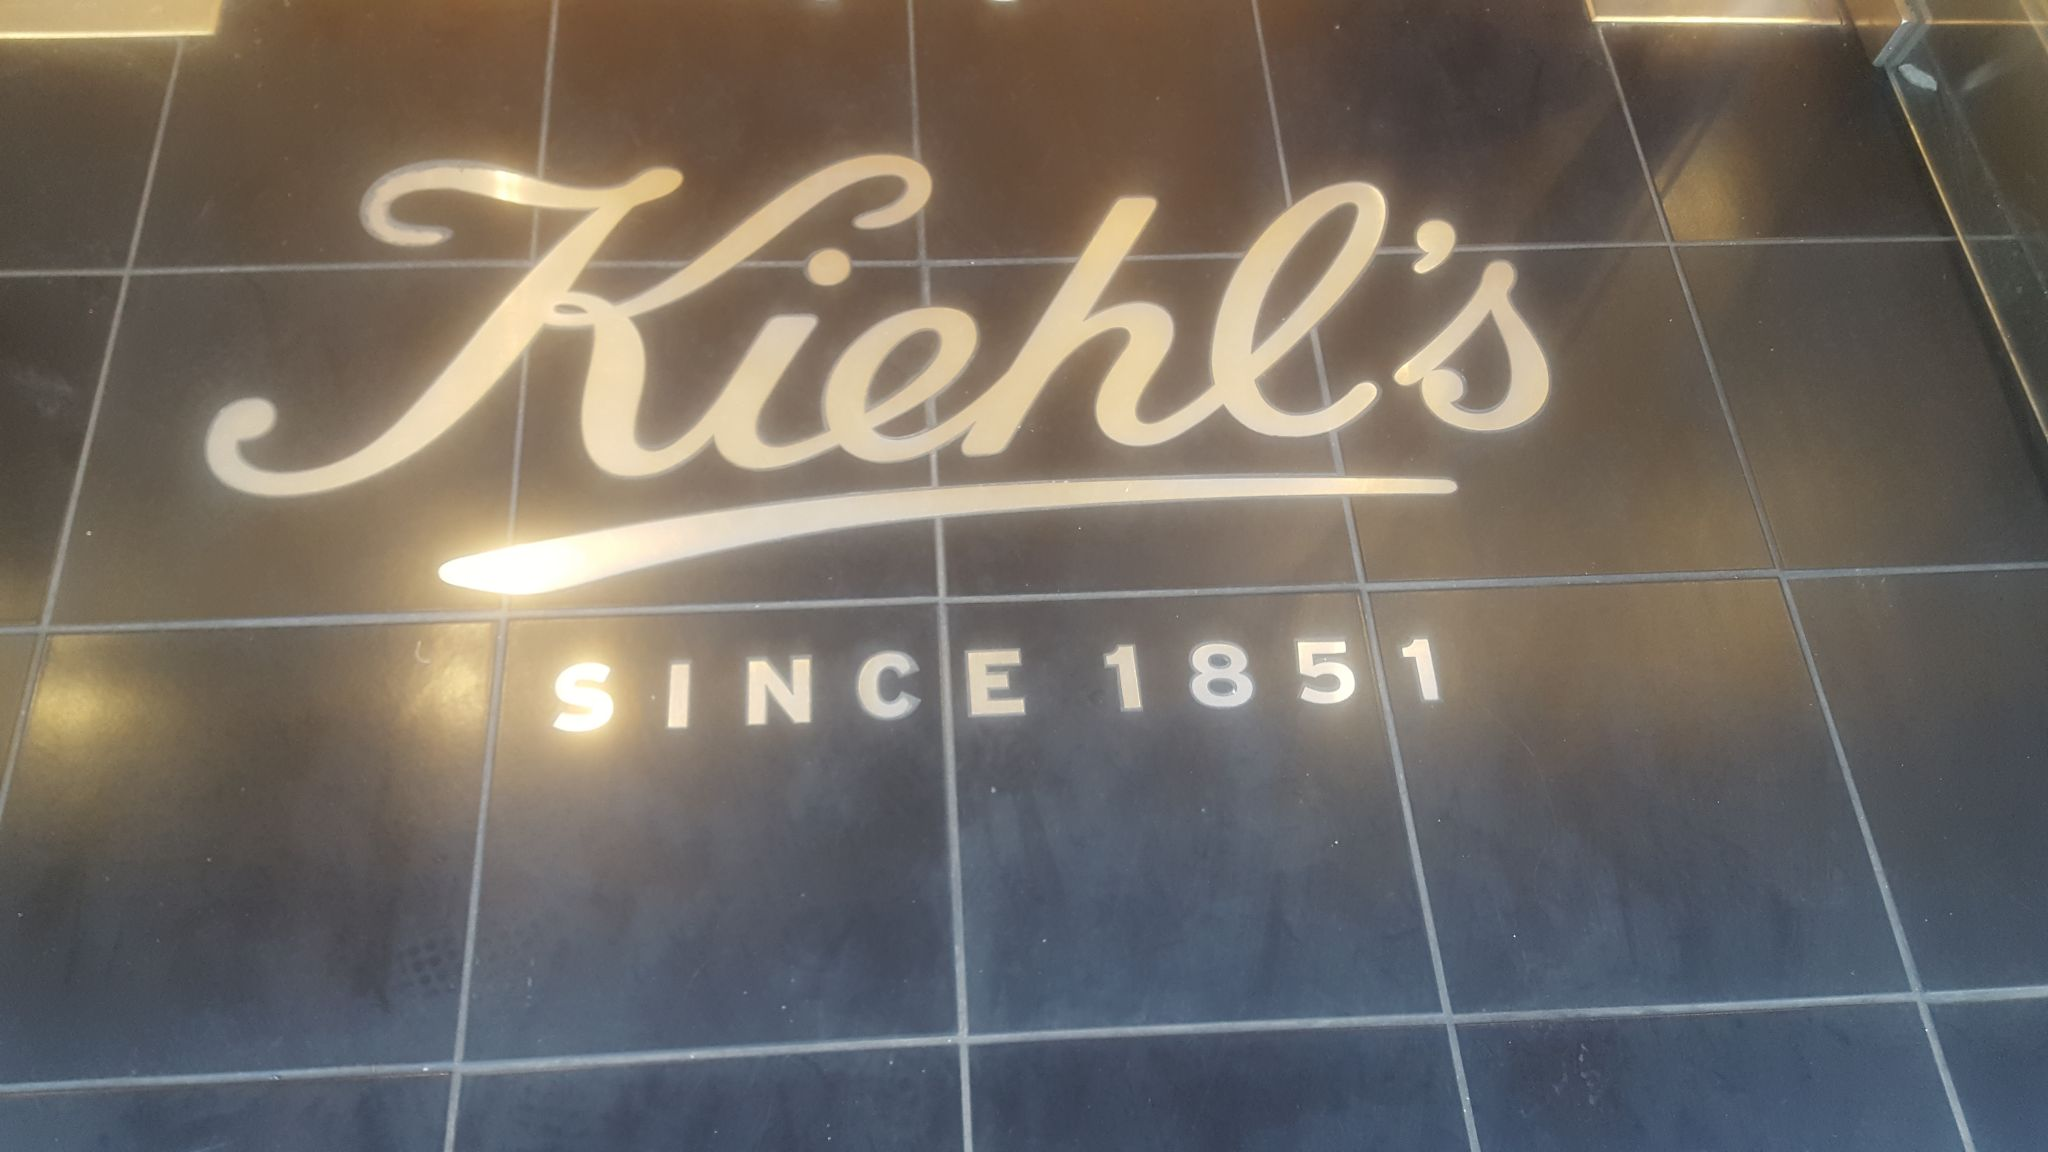 20170531 182923 1440x810 - An Evening with Kiehl's